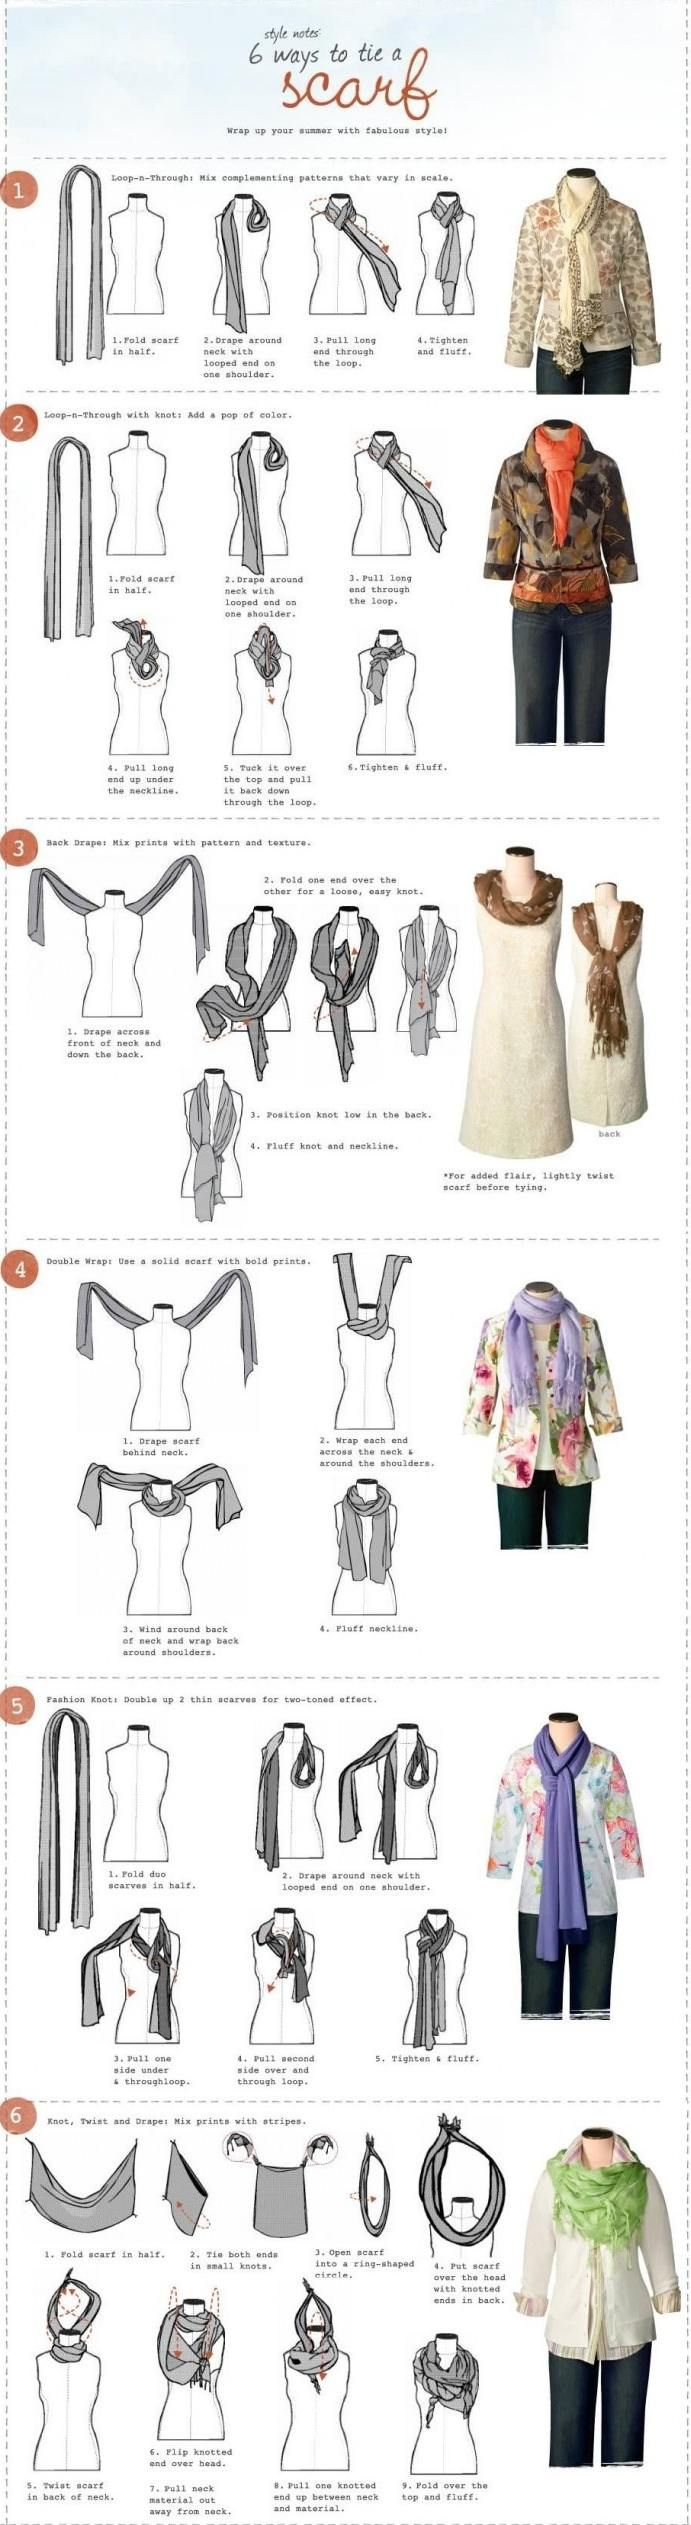 I may even buy a scarf now since this is telling me how to wear them. Lol